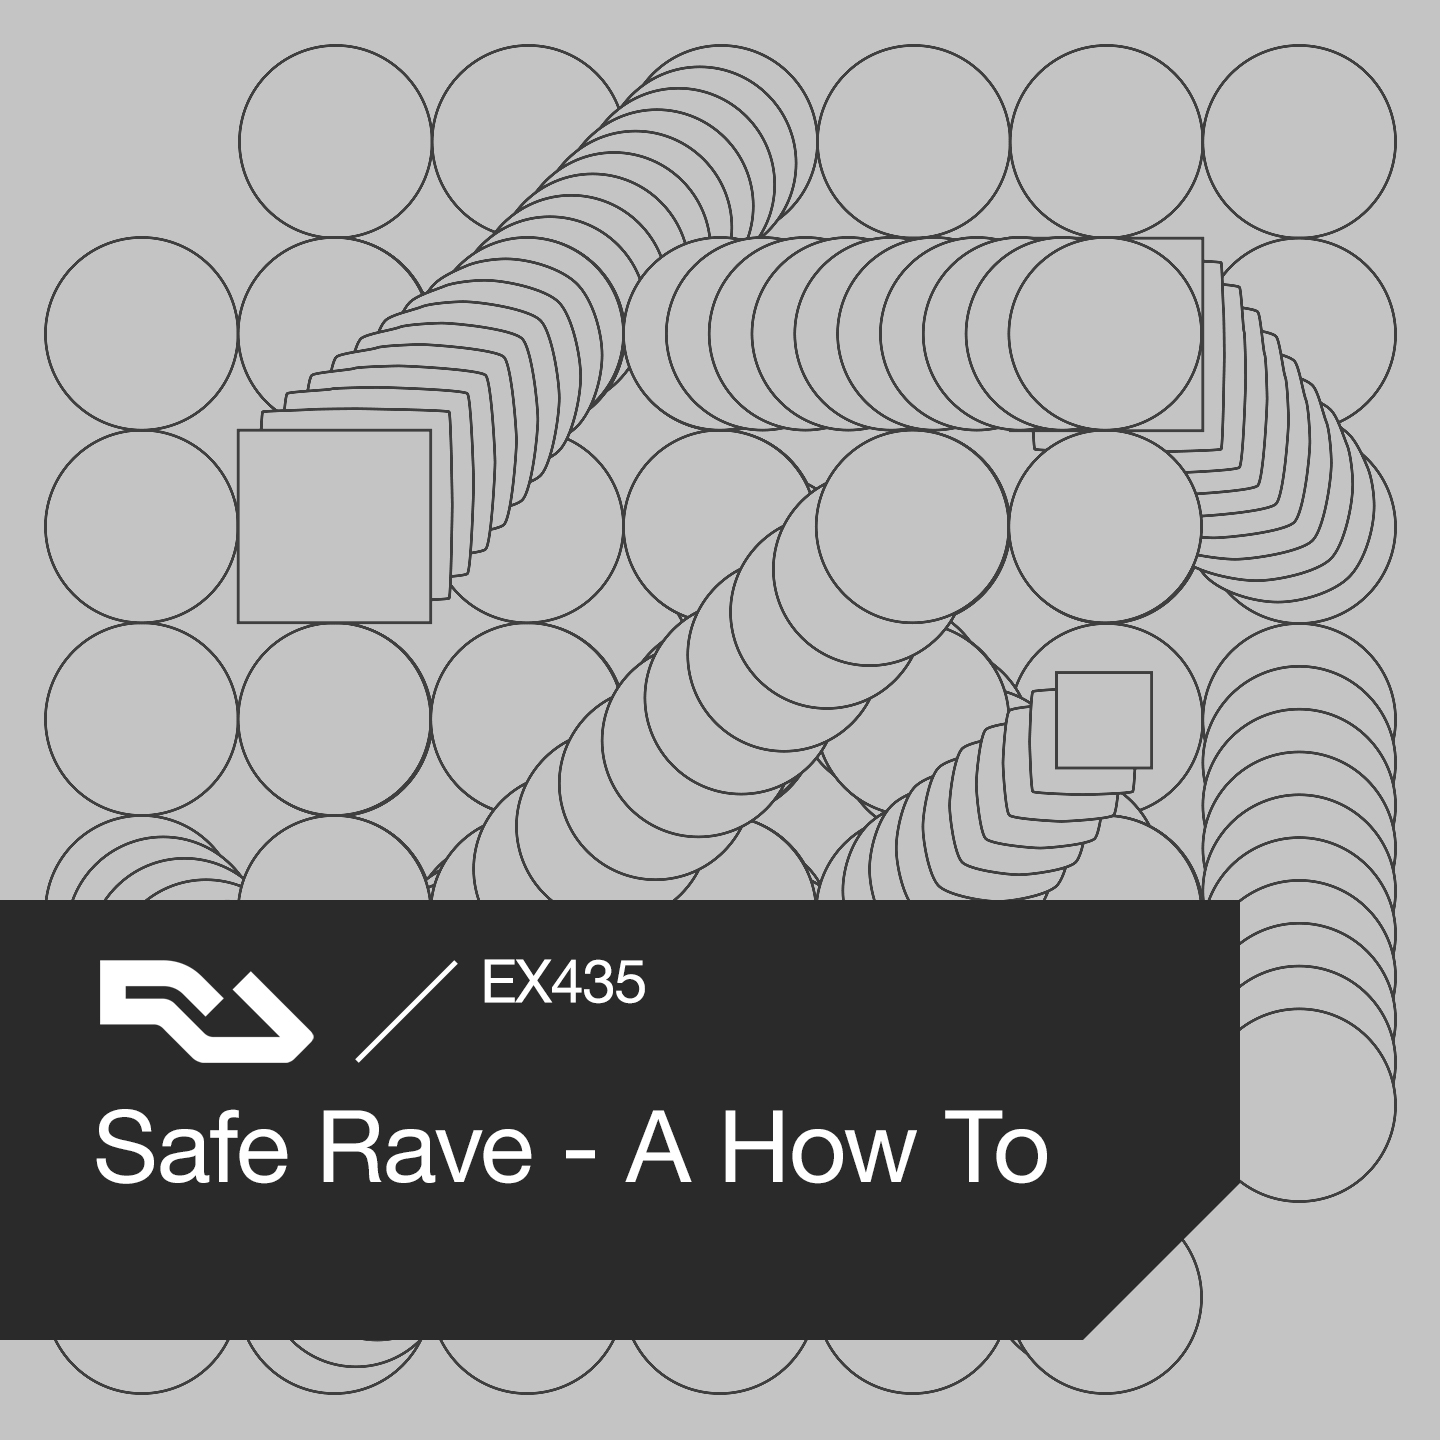 EX.435 Safe Rave - A How To